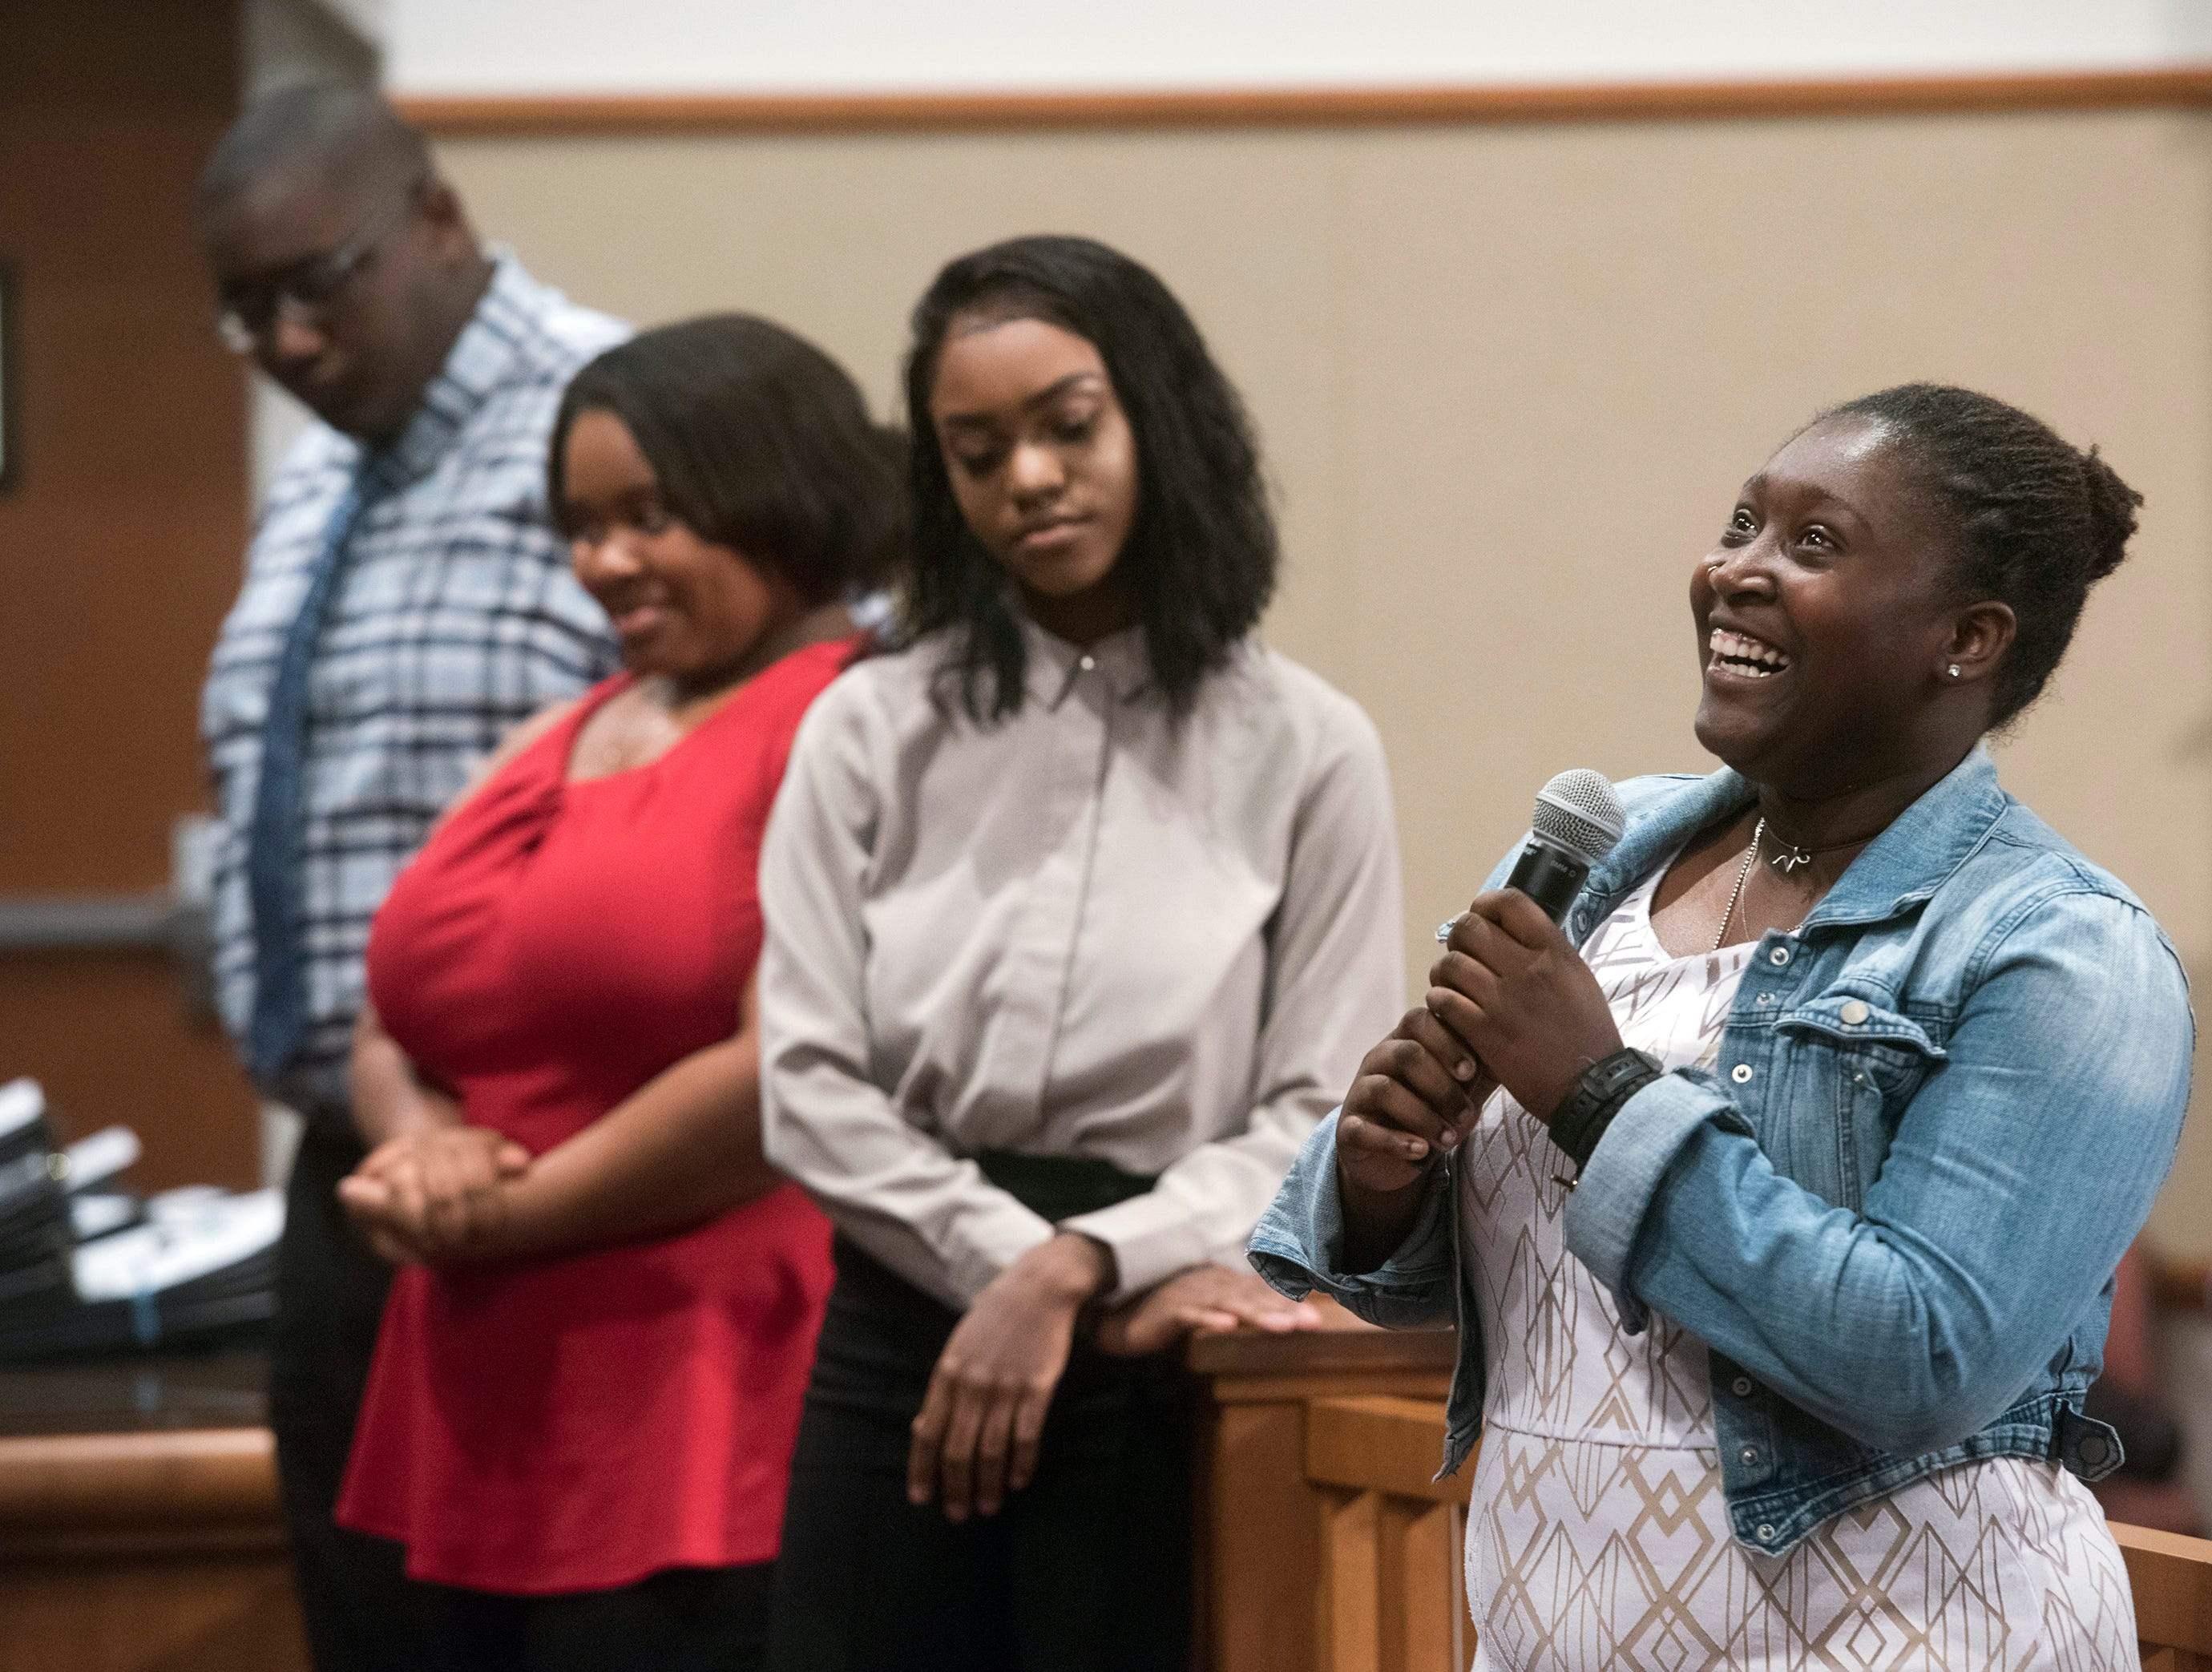 Destinee Pagett, right, praises Escambia County for its student internship program during a ceremony in the commission chambers to recognize the young workers Thursday, Aug. 9, 2018.